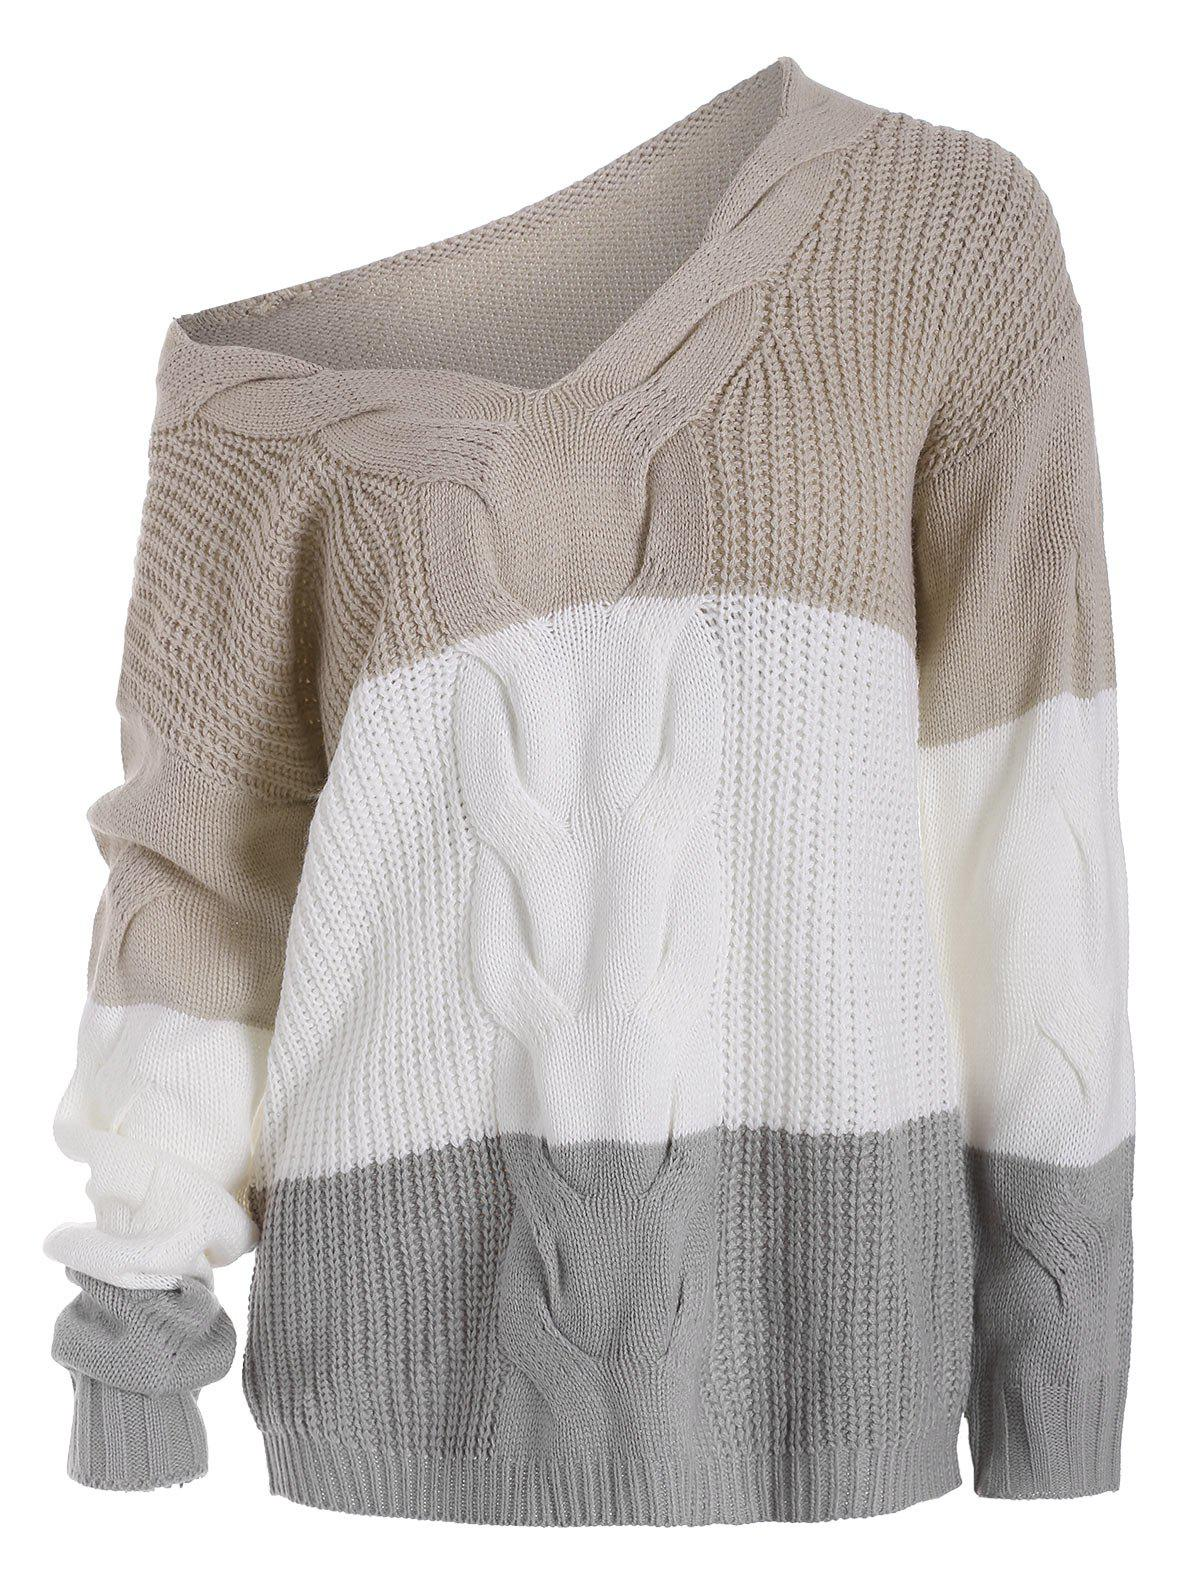 Shop V Neck Cable Knit Colorblock Sweater